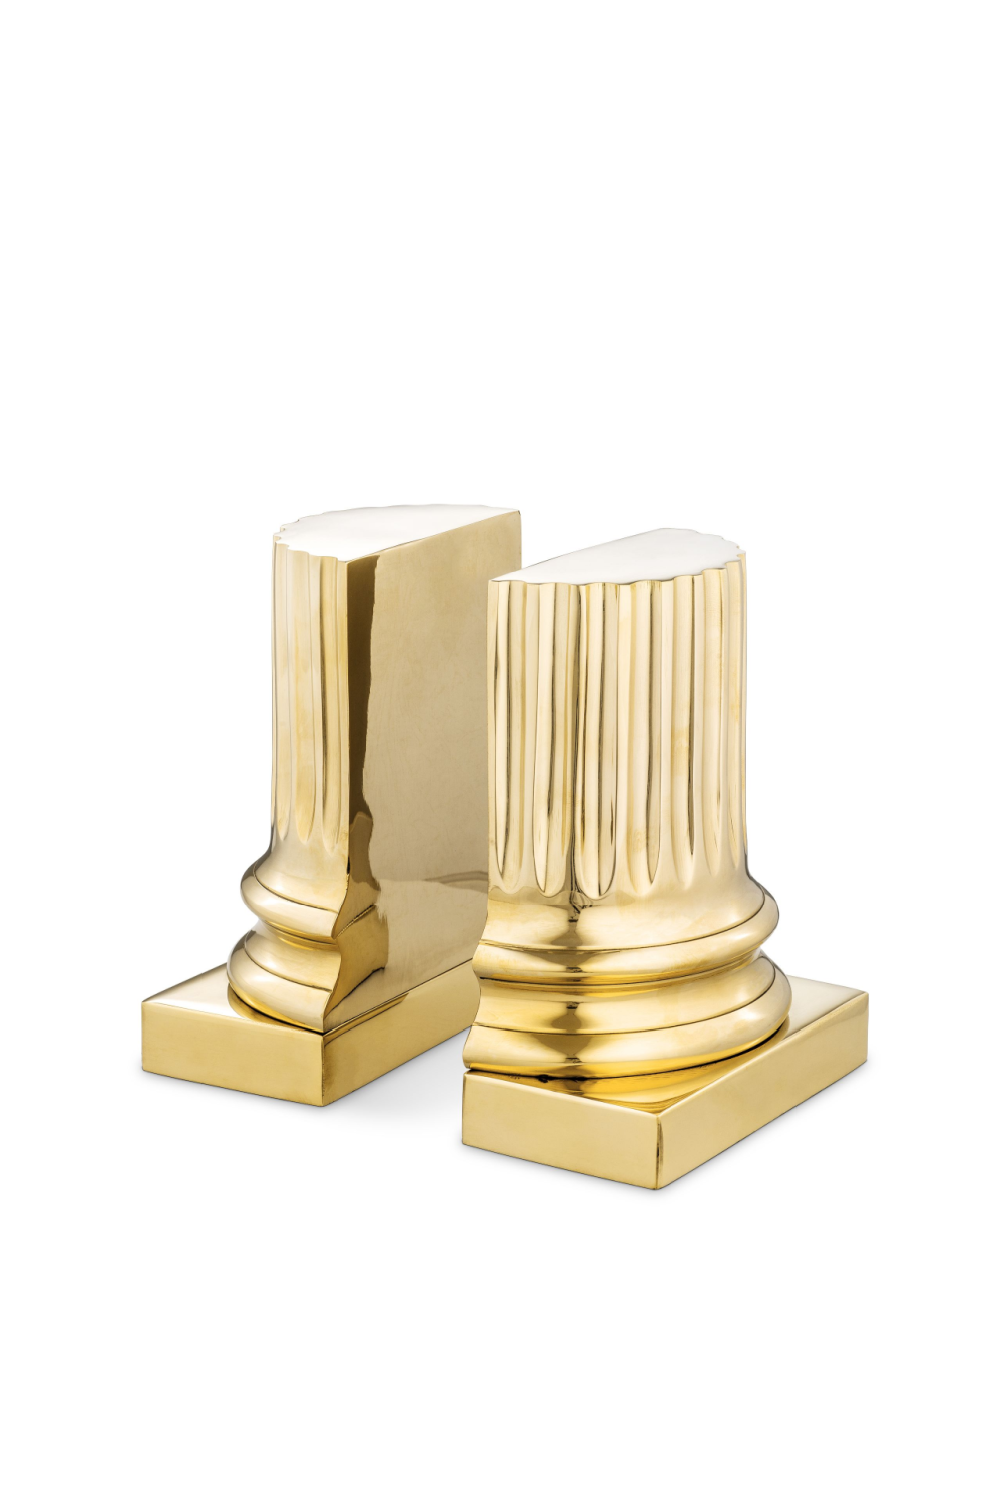 Gold Bookends set of 2| Eichholtz Pillar | #1 Eichholtz Online Retailer